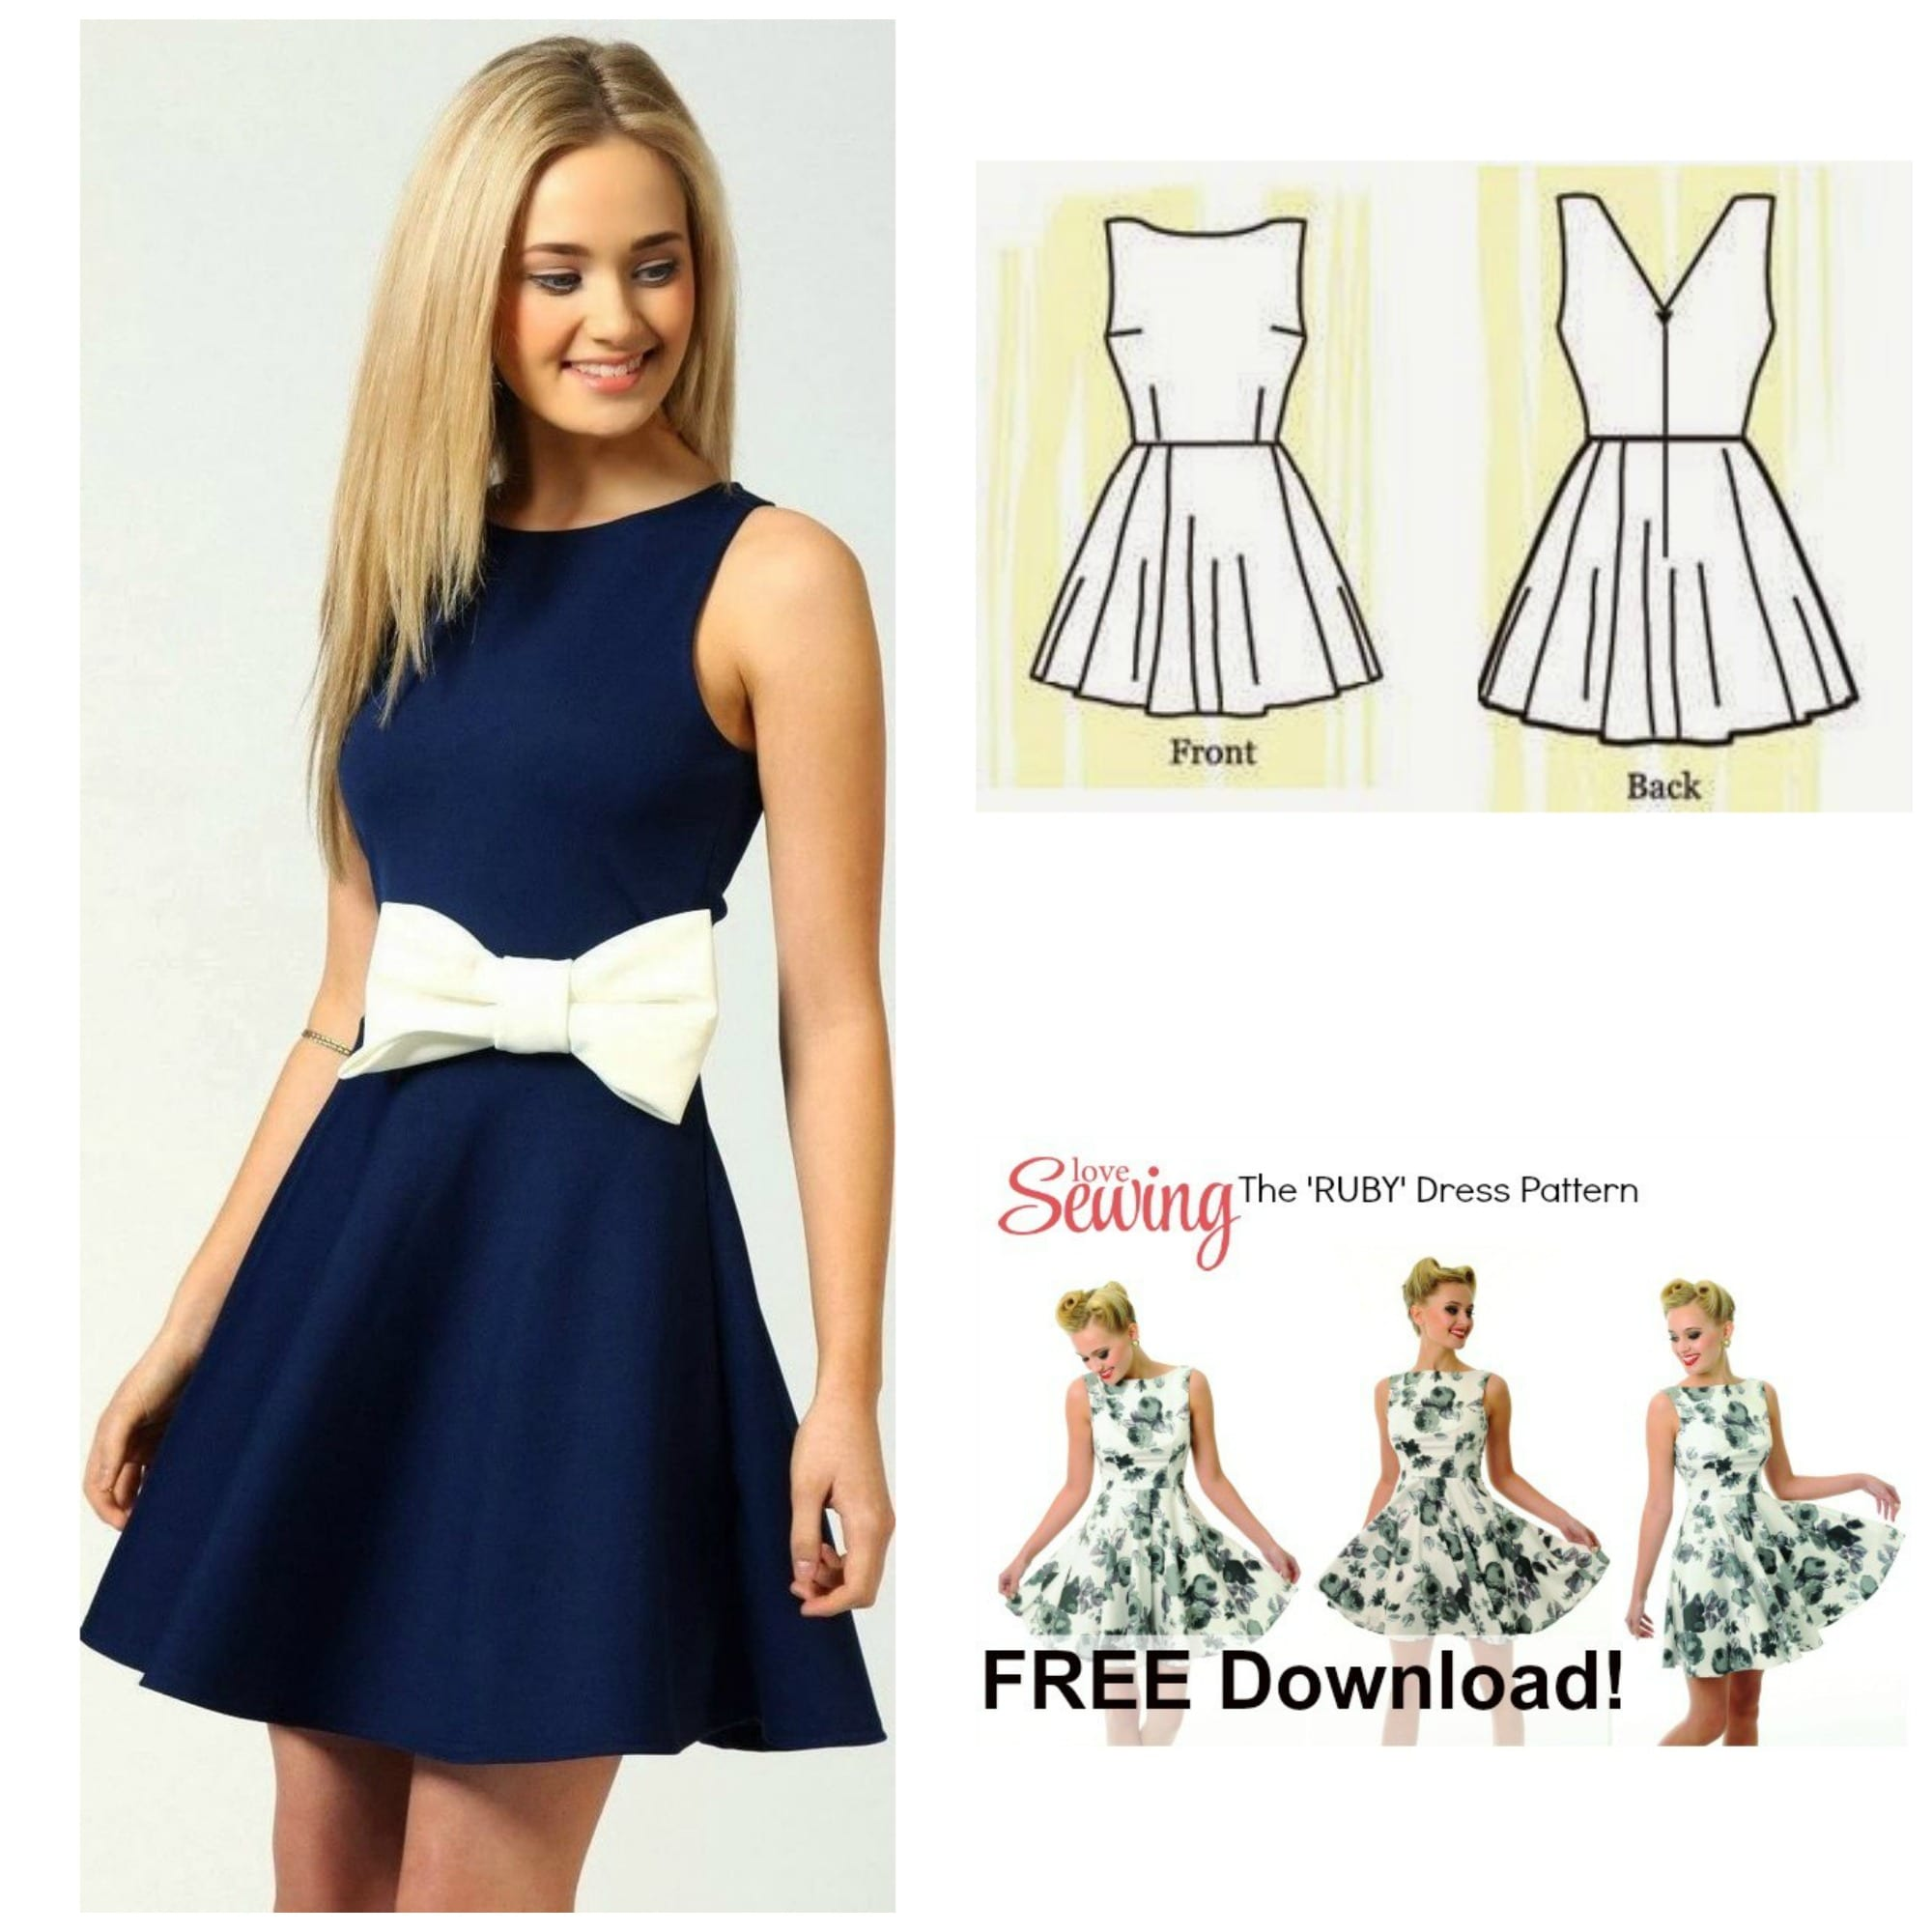 Free Dress Pattern: The Ruby Dress